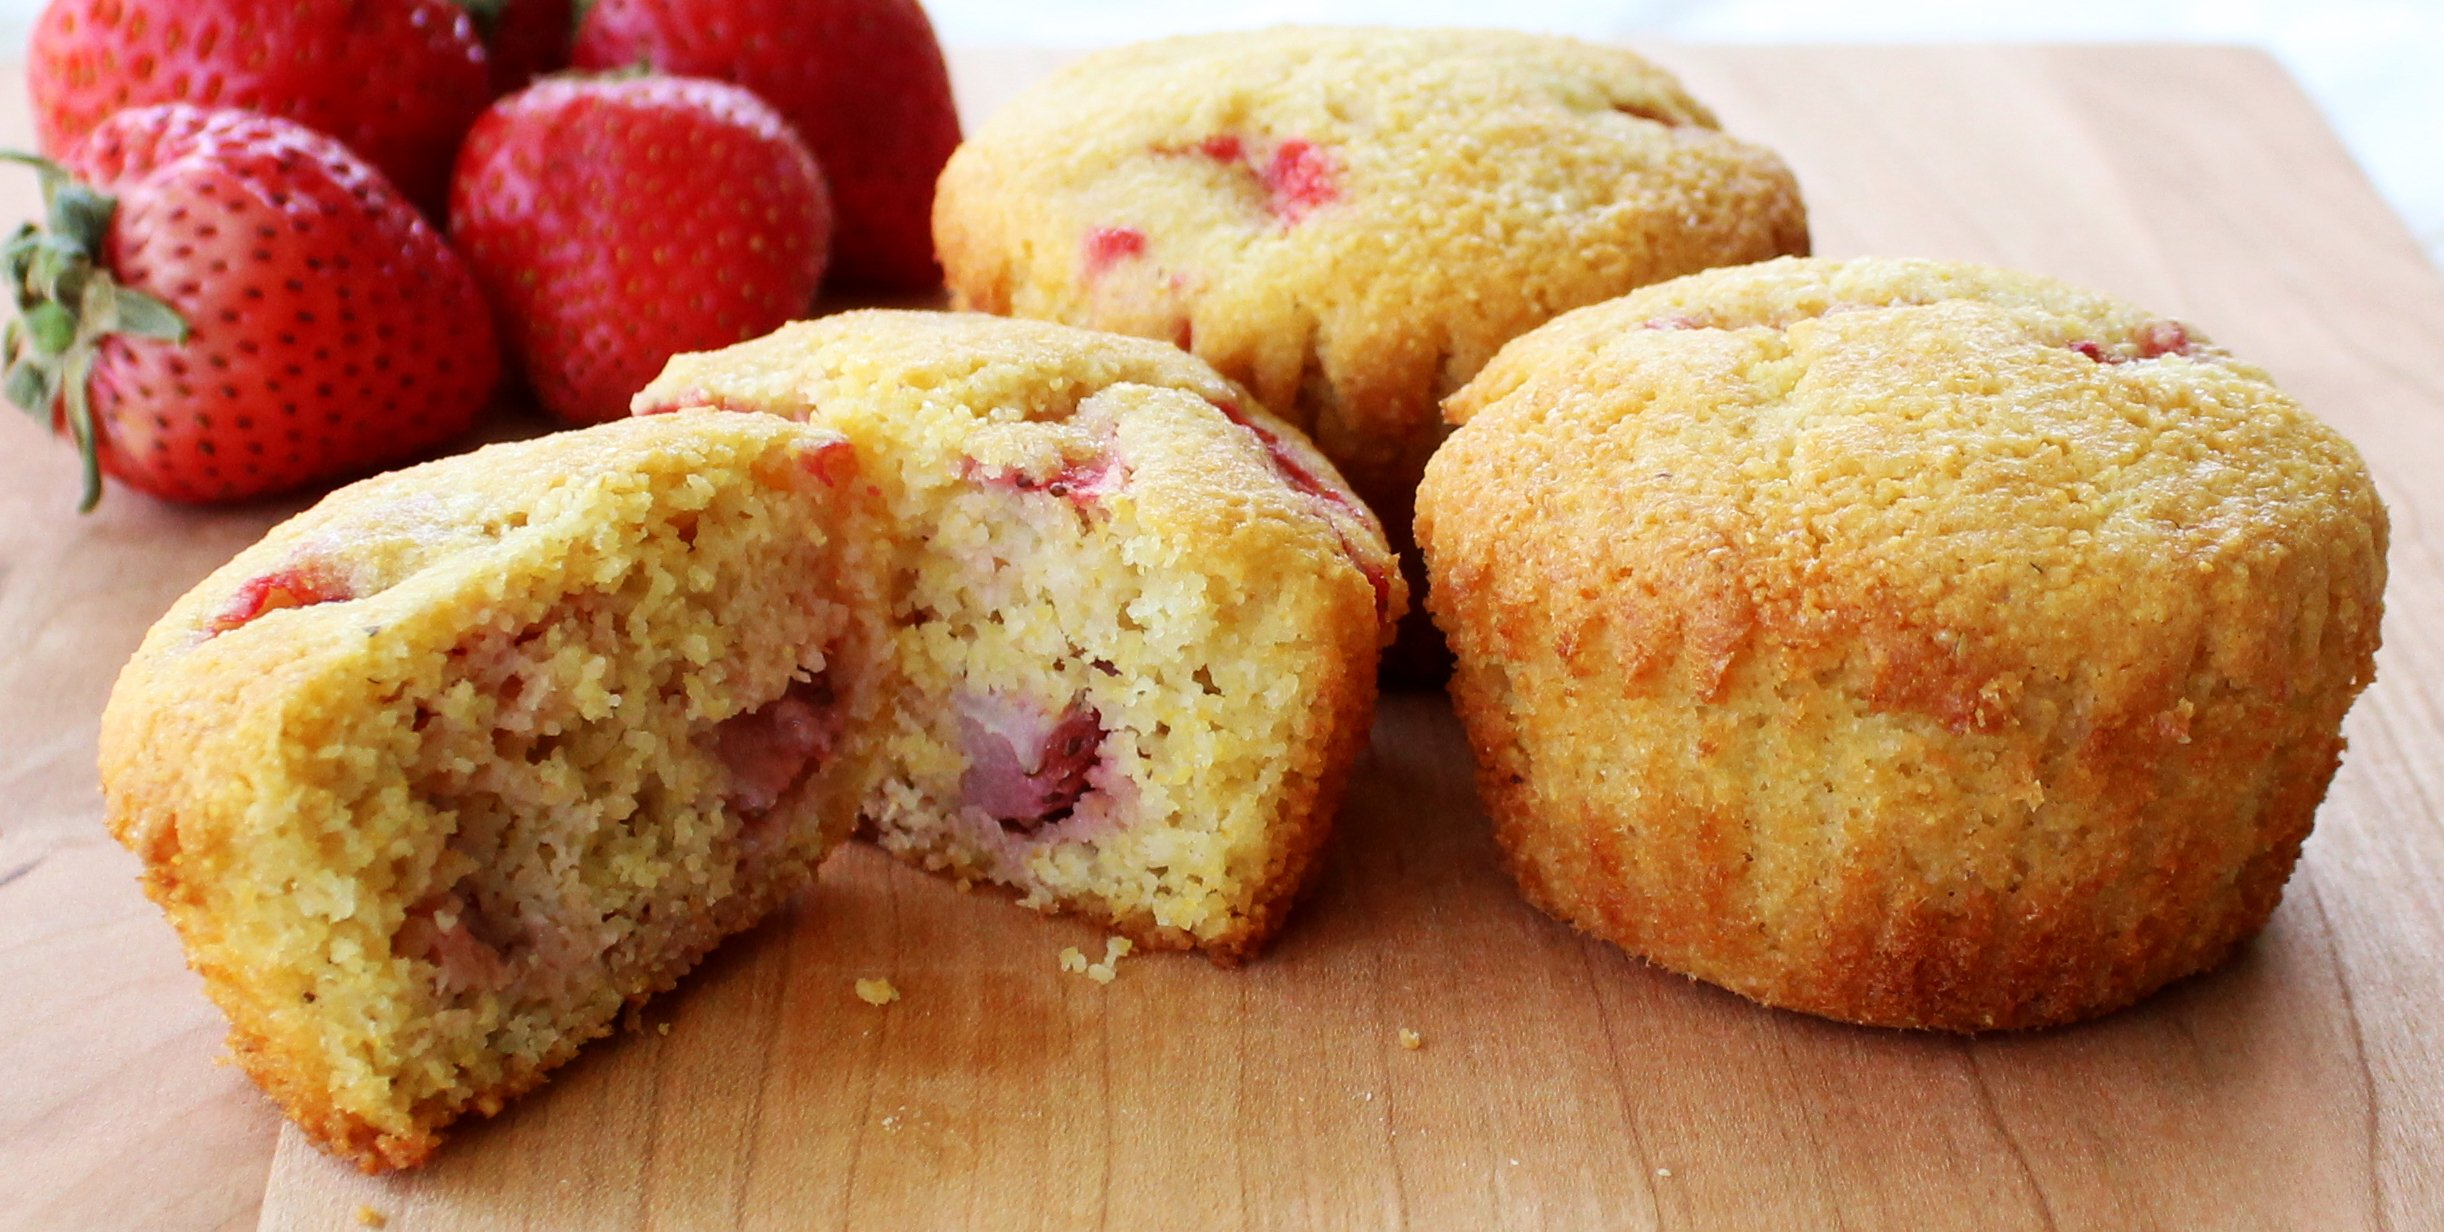 Strawberry Corn Muffin